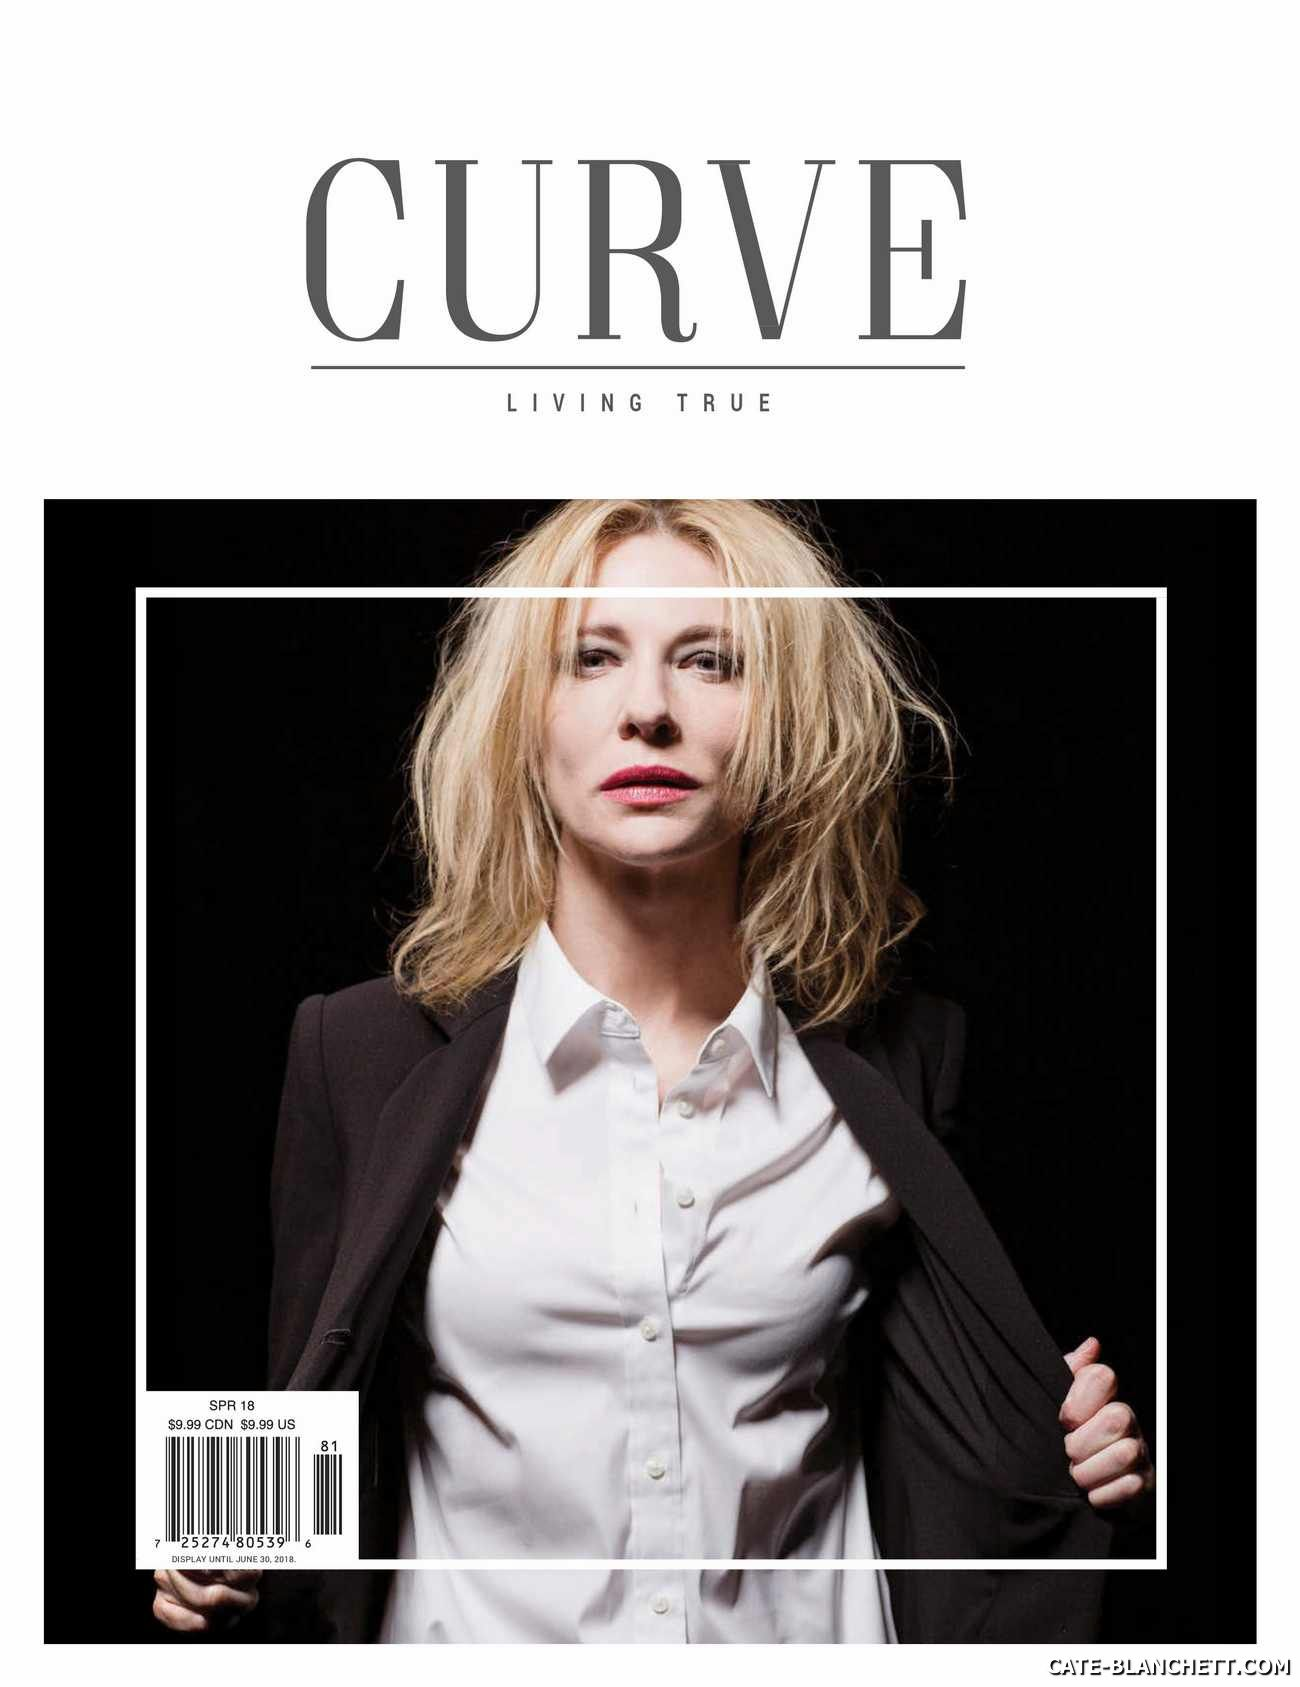 Cate Blanchett on the cover of Curve Magazine